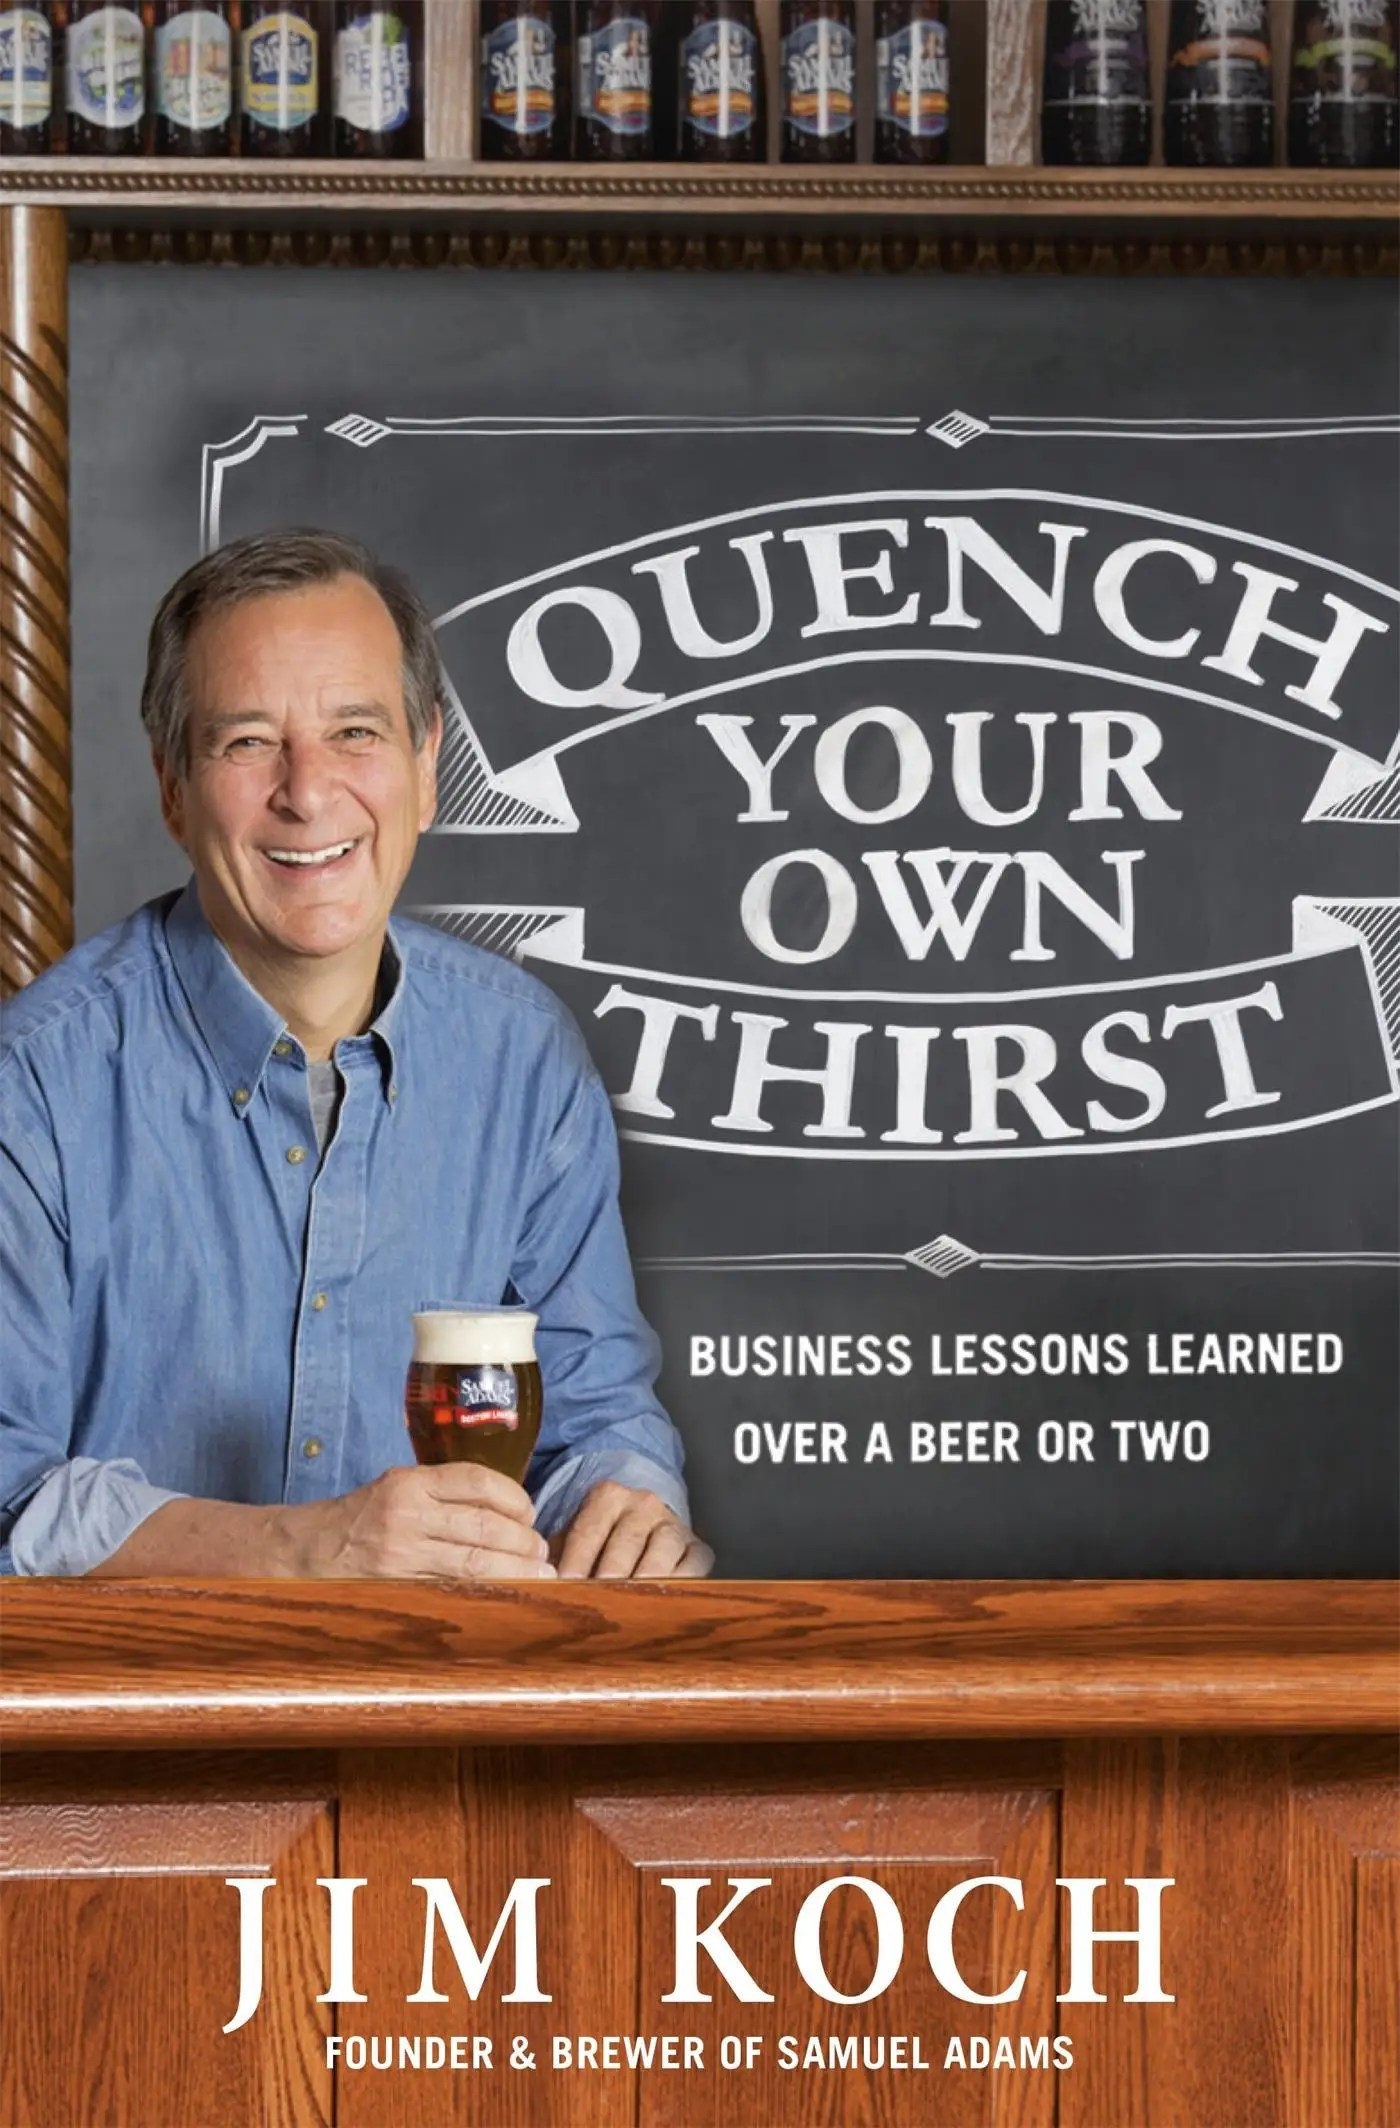 'Quench Your Own Thirst' by Jim Koch